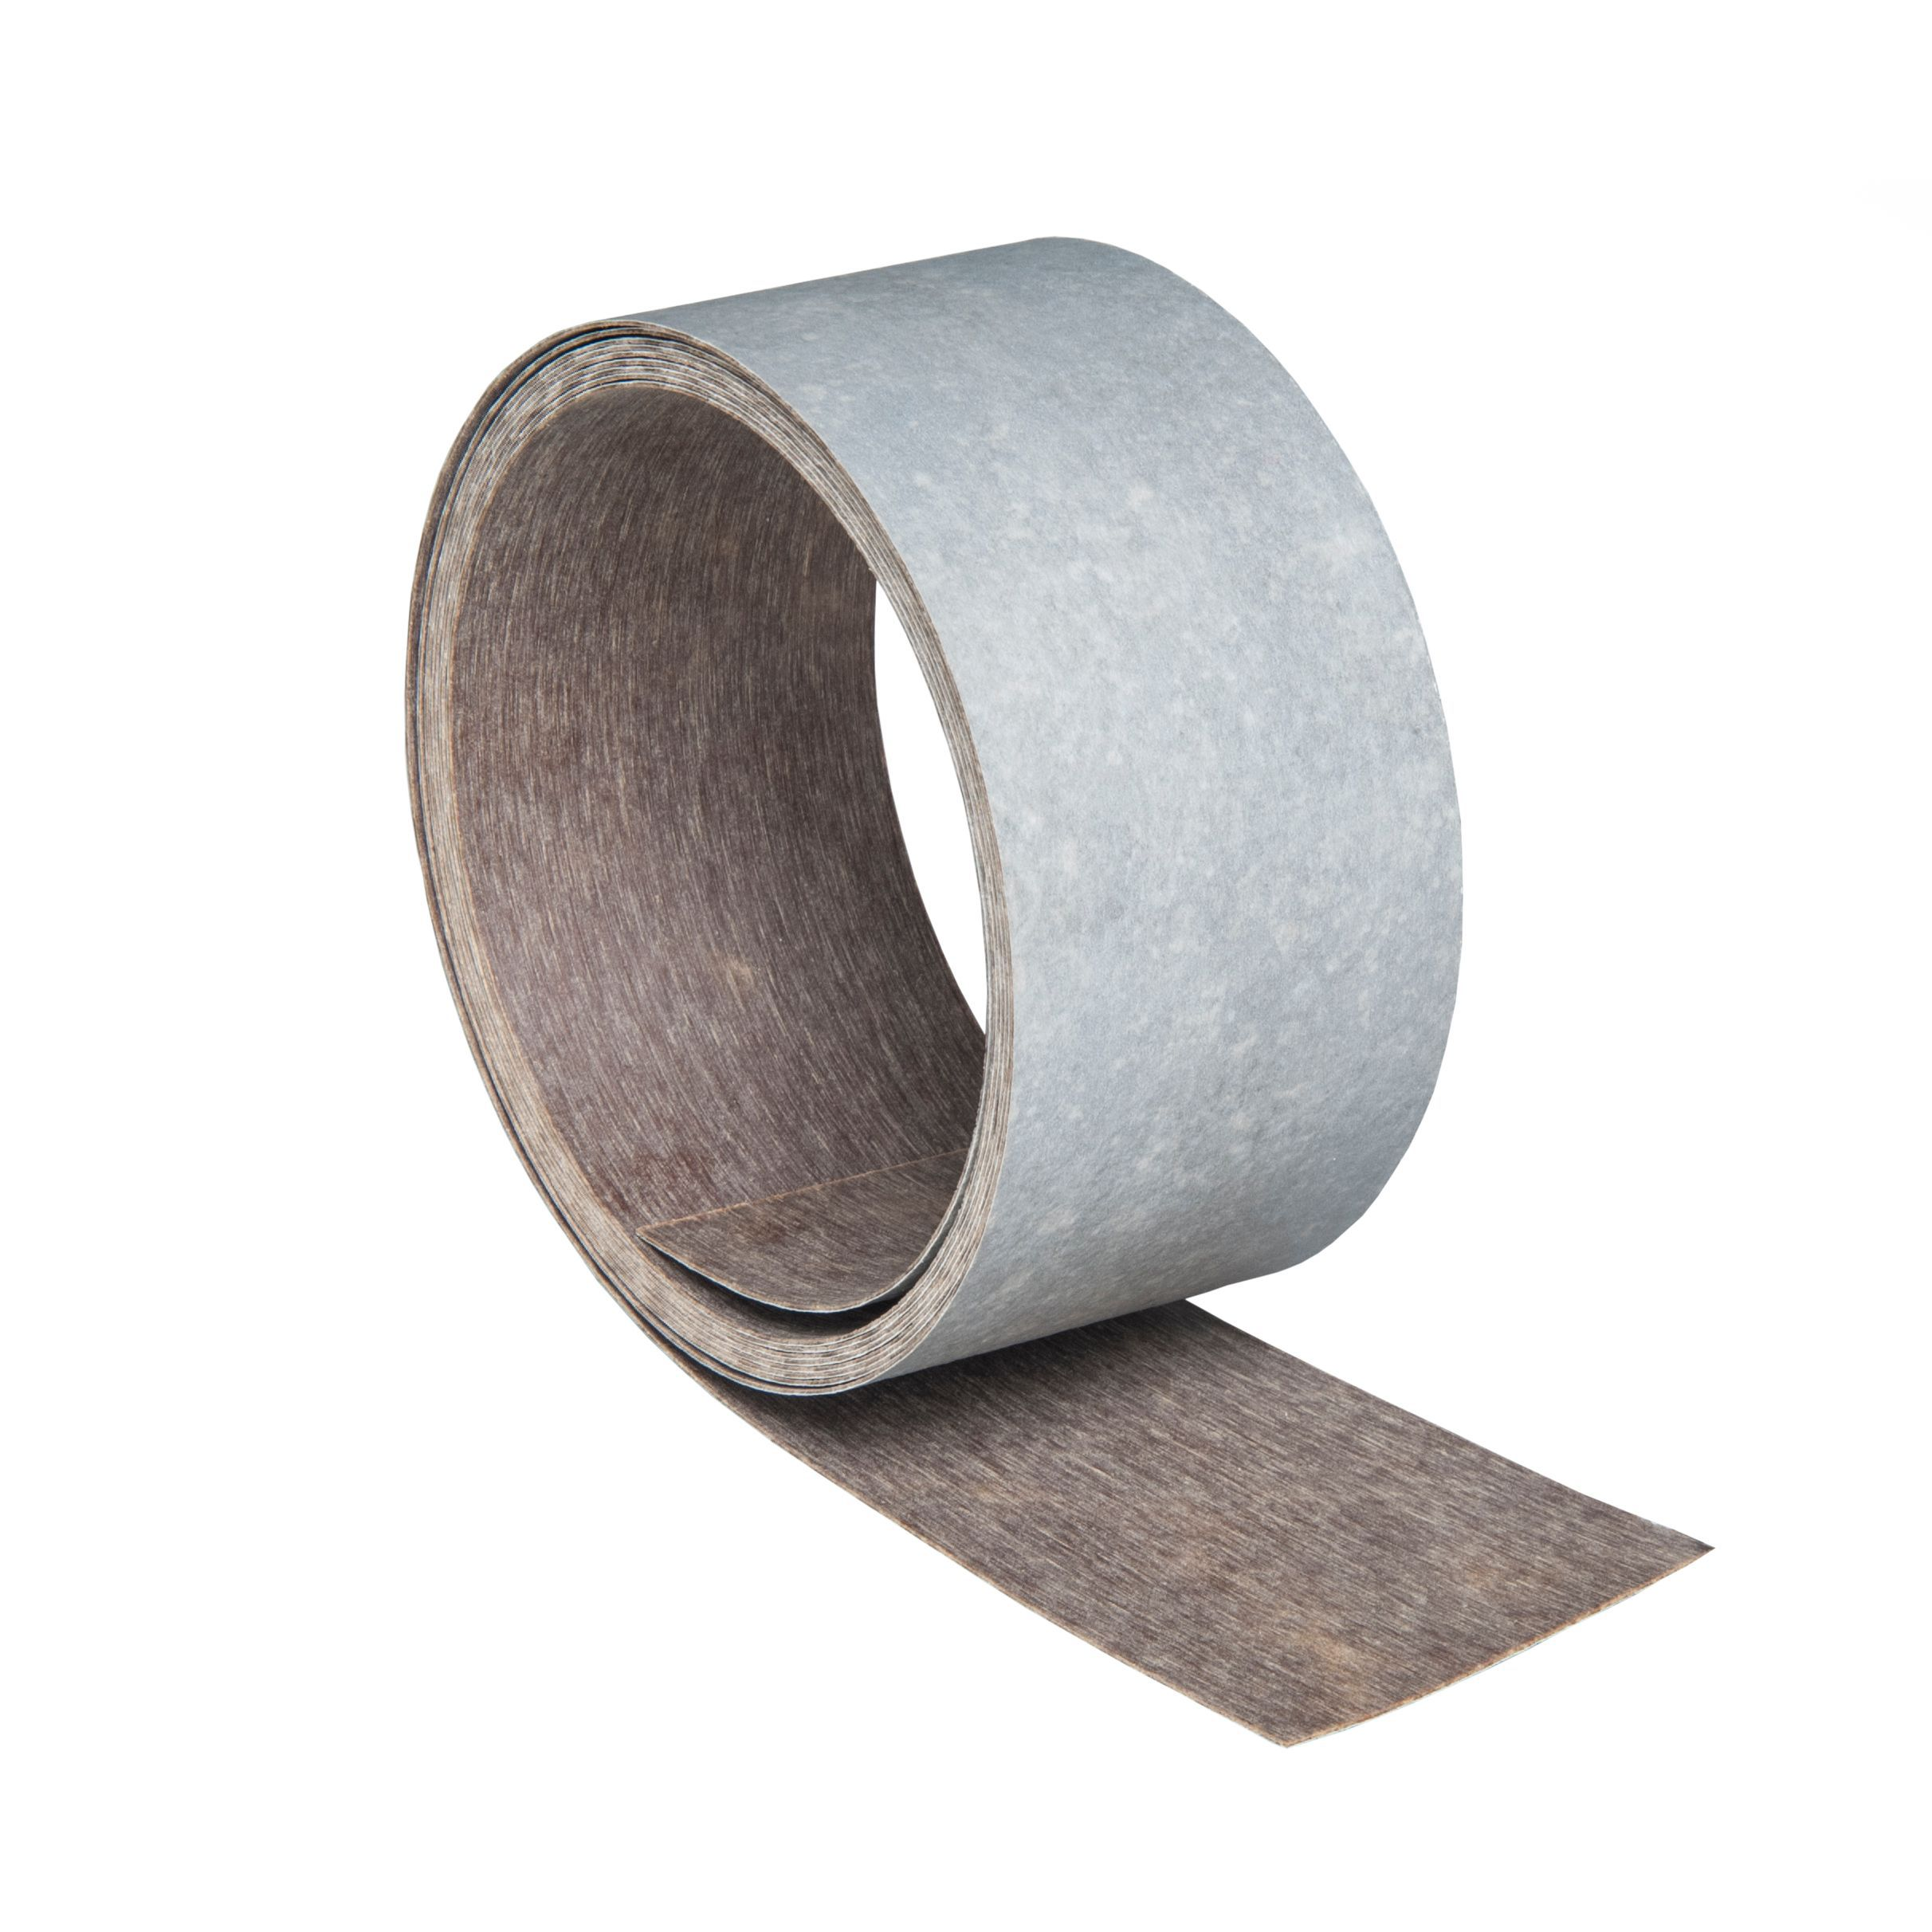 Cooke & Lewis Tectonica Matt Grey Stone Effect Worktop Edging Tape (l)3m